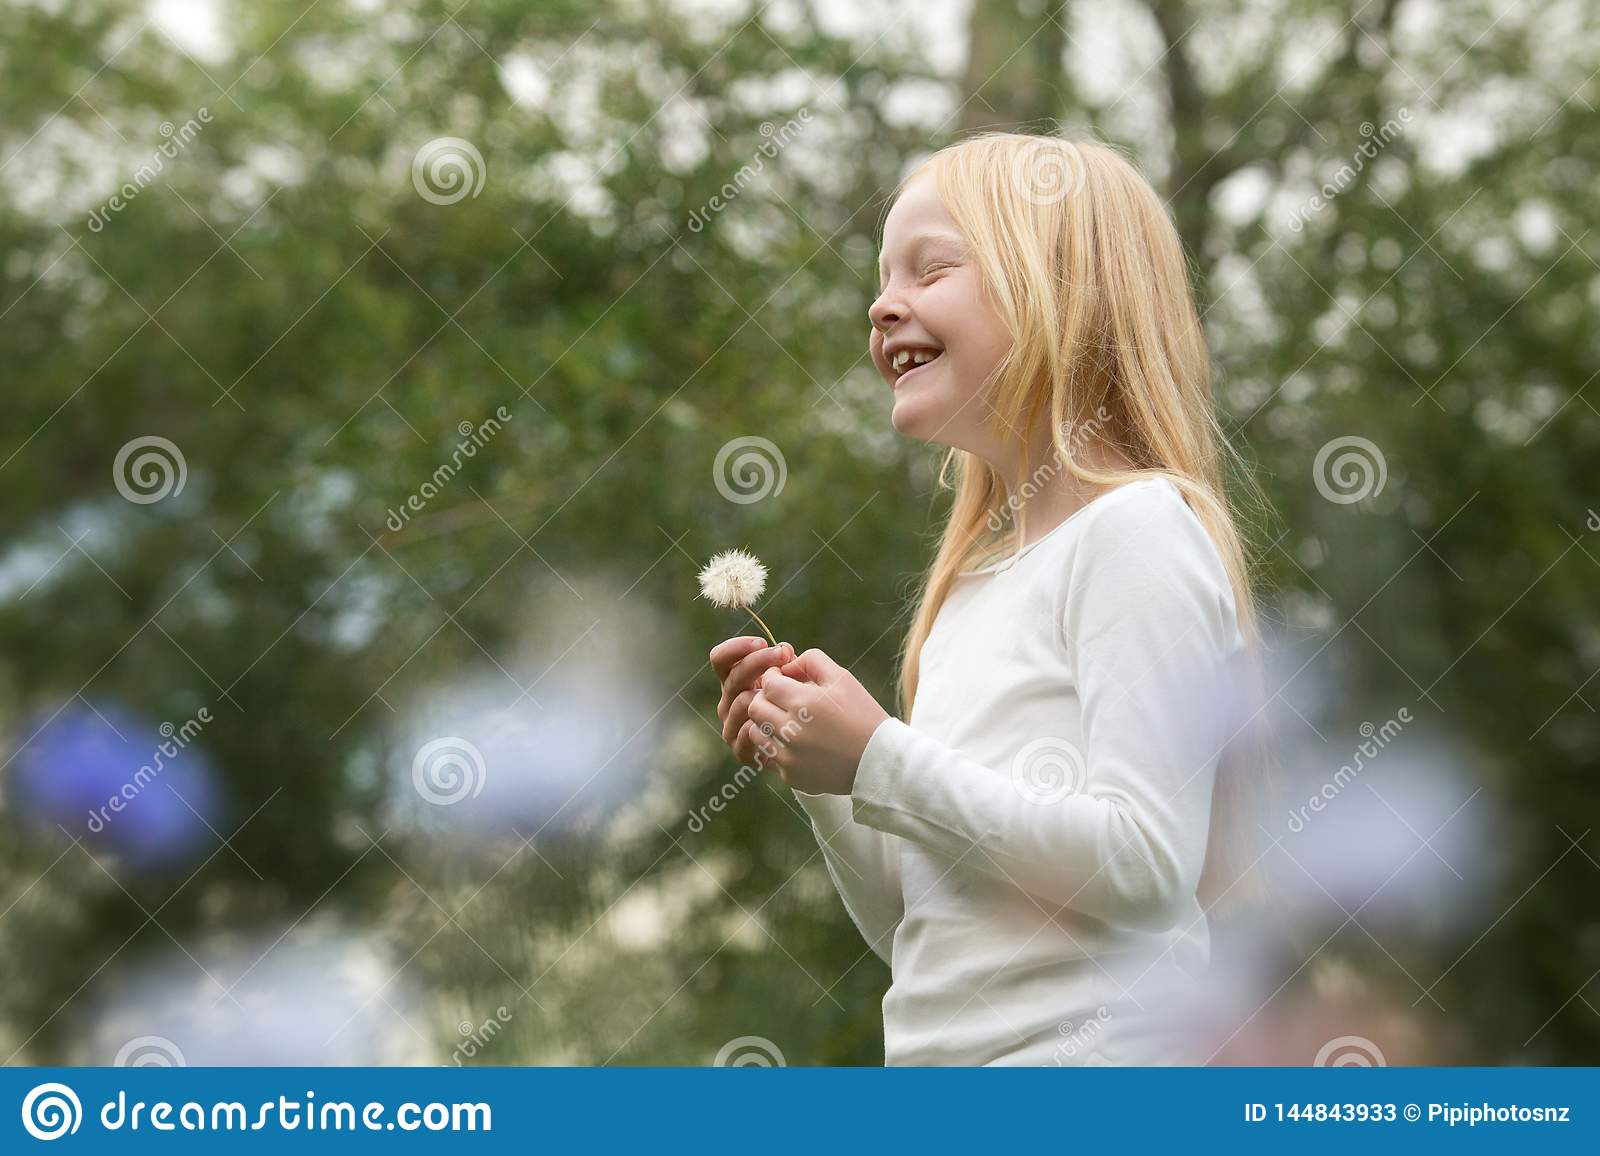 Young caucasian girl wishes on a dandelion